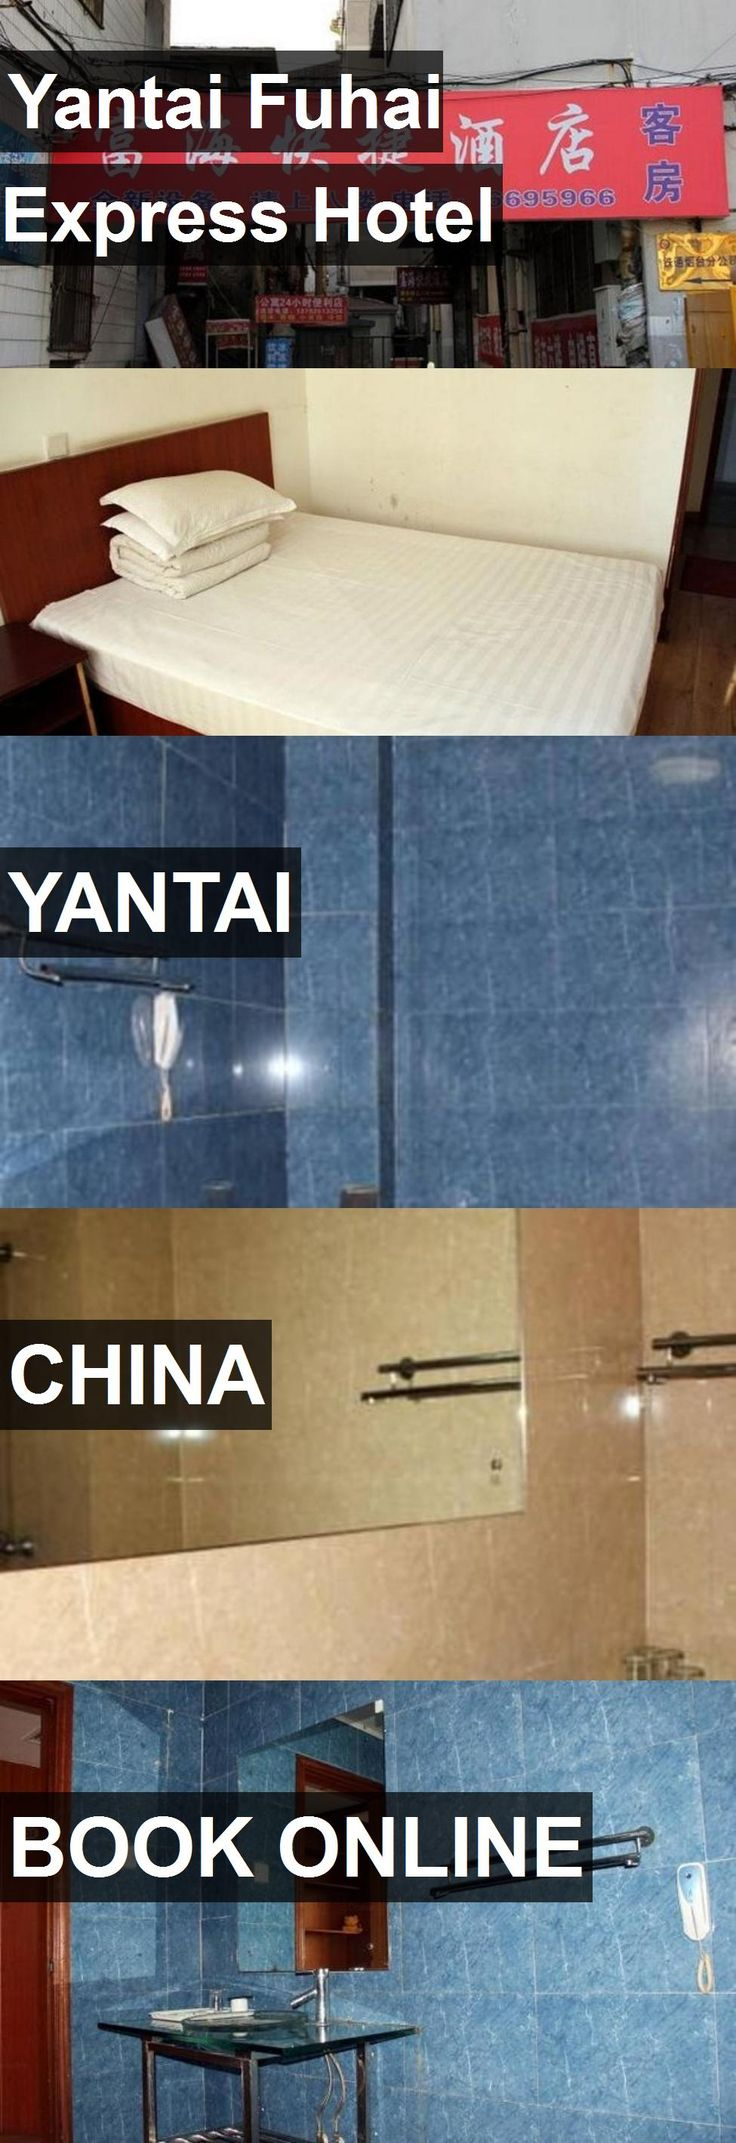 Yantai Fuhai Express Hotel in Yantai, China. For more information, photos, reviews and best prices please follow the link. #China #Yantai #travel #vacation #hotel